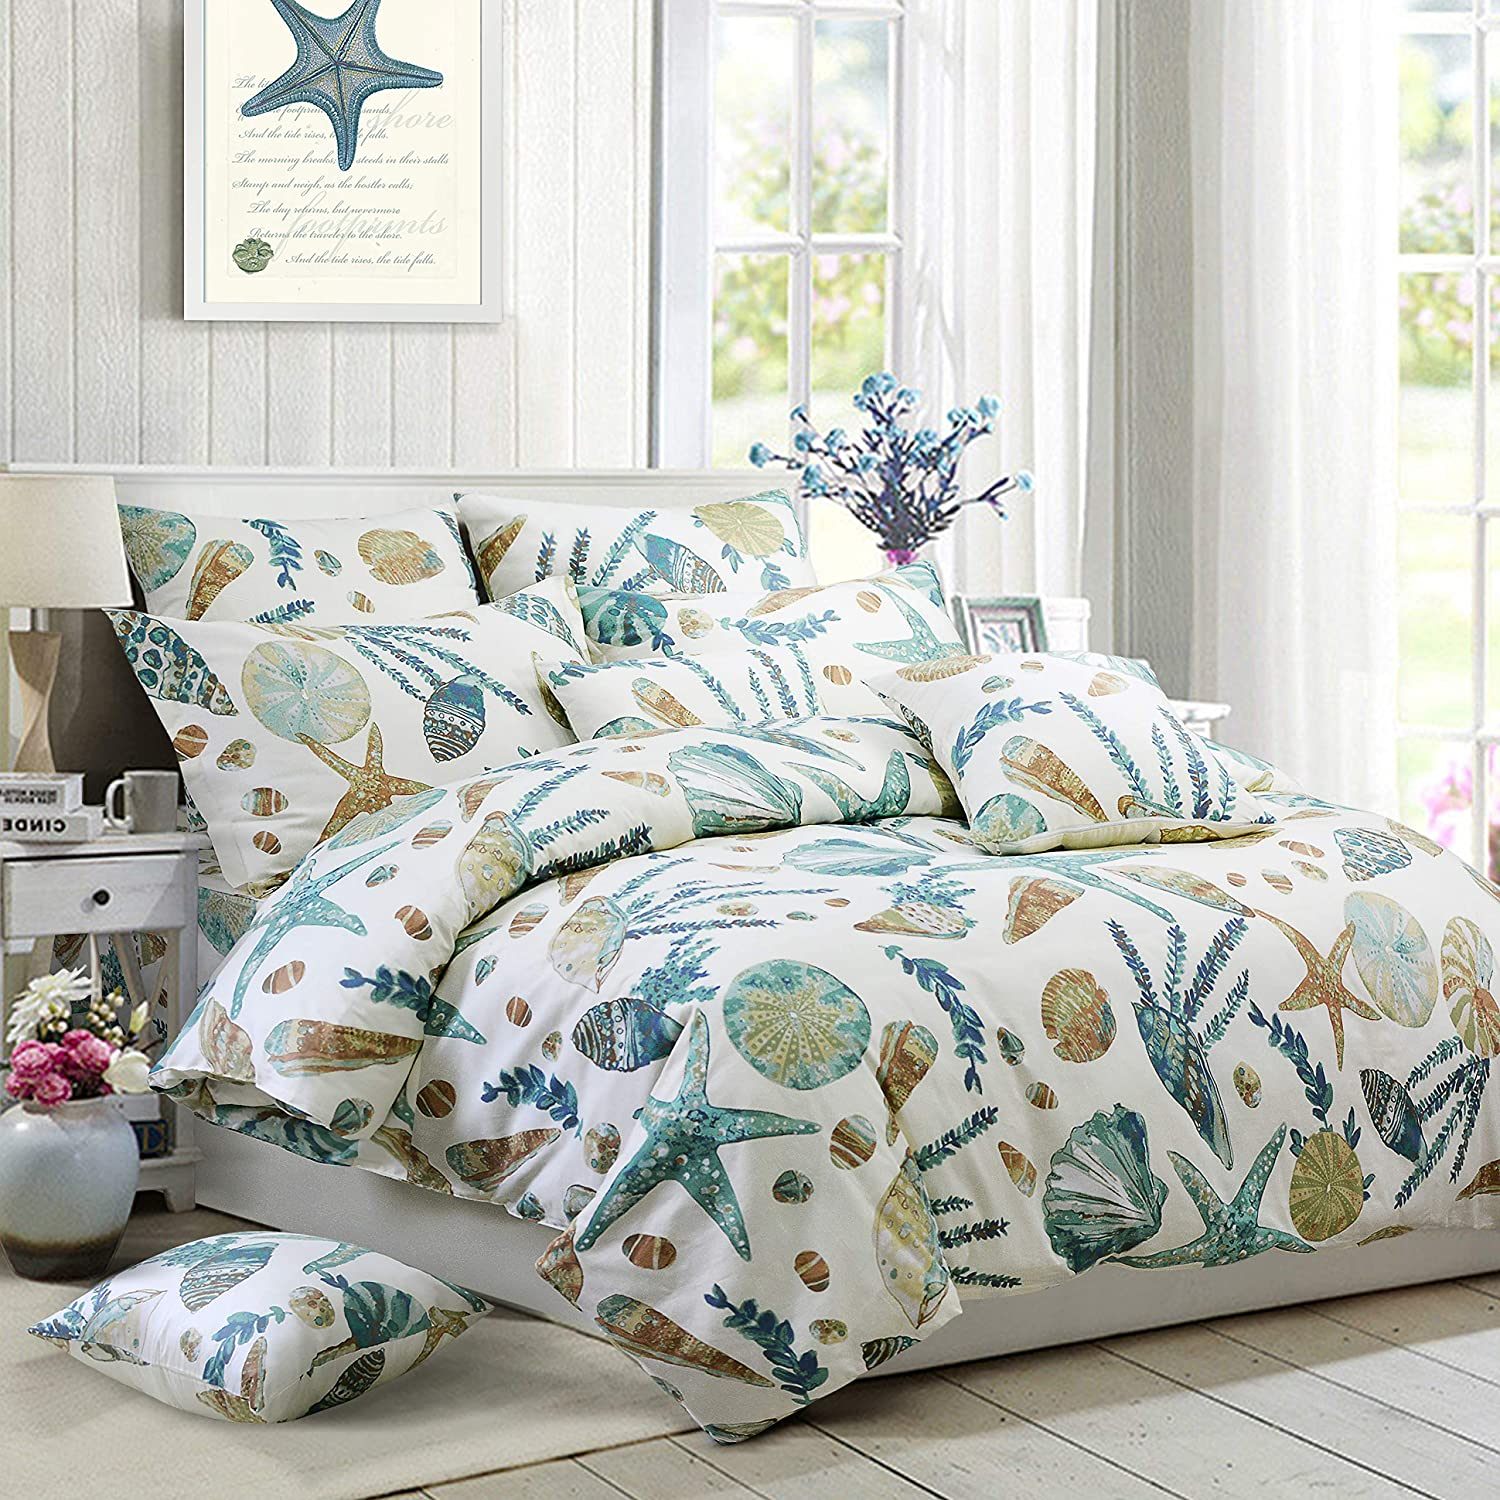 FADFAY Duvet Cover Set Twin XL Beach Themed Bedding Sets 100% Cotton Super Soft Coastal Bedding White Teal Nautical Bedding with Hidden Zipper Closure 3 Pieces Twin Extra Long Size for Dorm Room